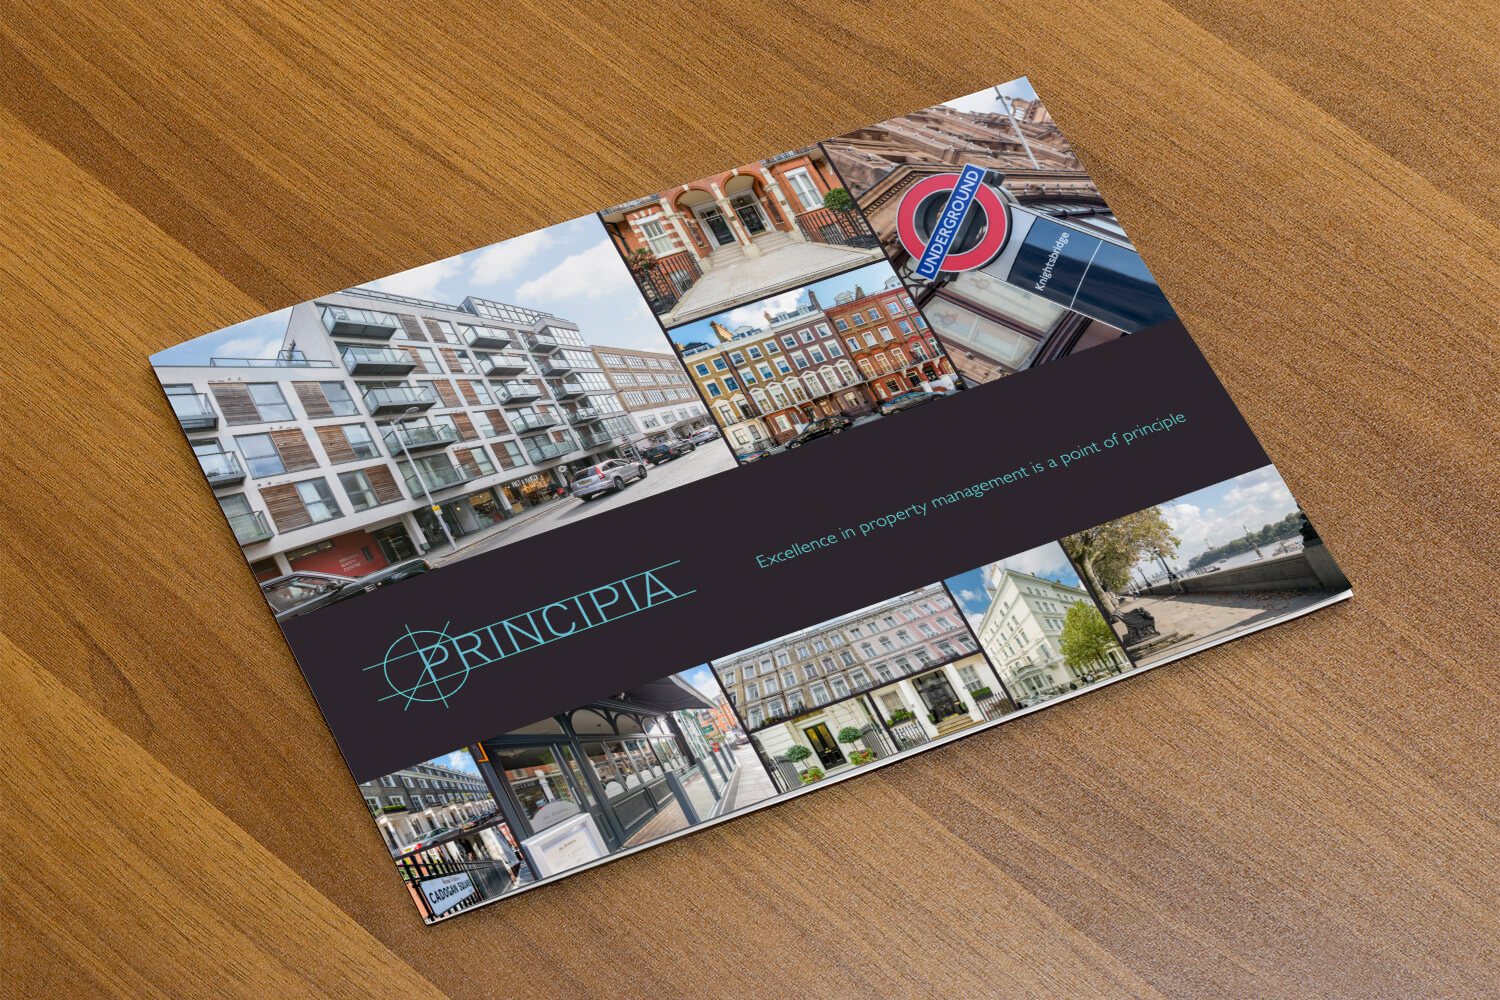 The Principia promotional brochure cover